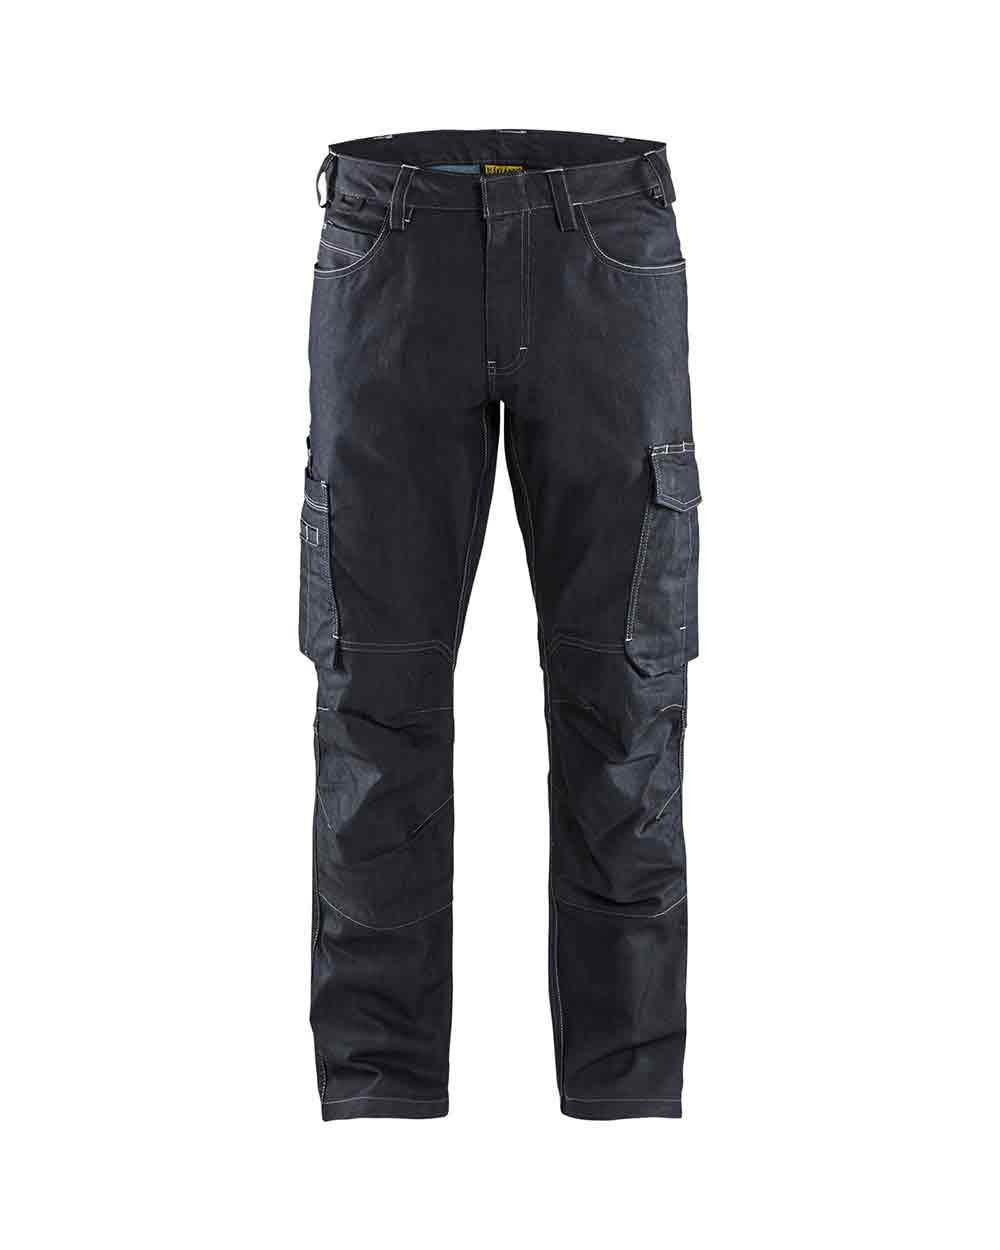 46fe343f0115 Blaklader 1439 Service Trouser Denim Stretch - Work Trousers ...